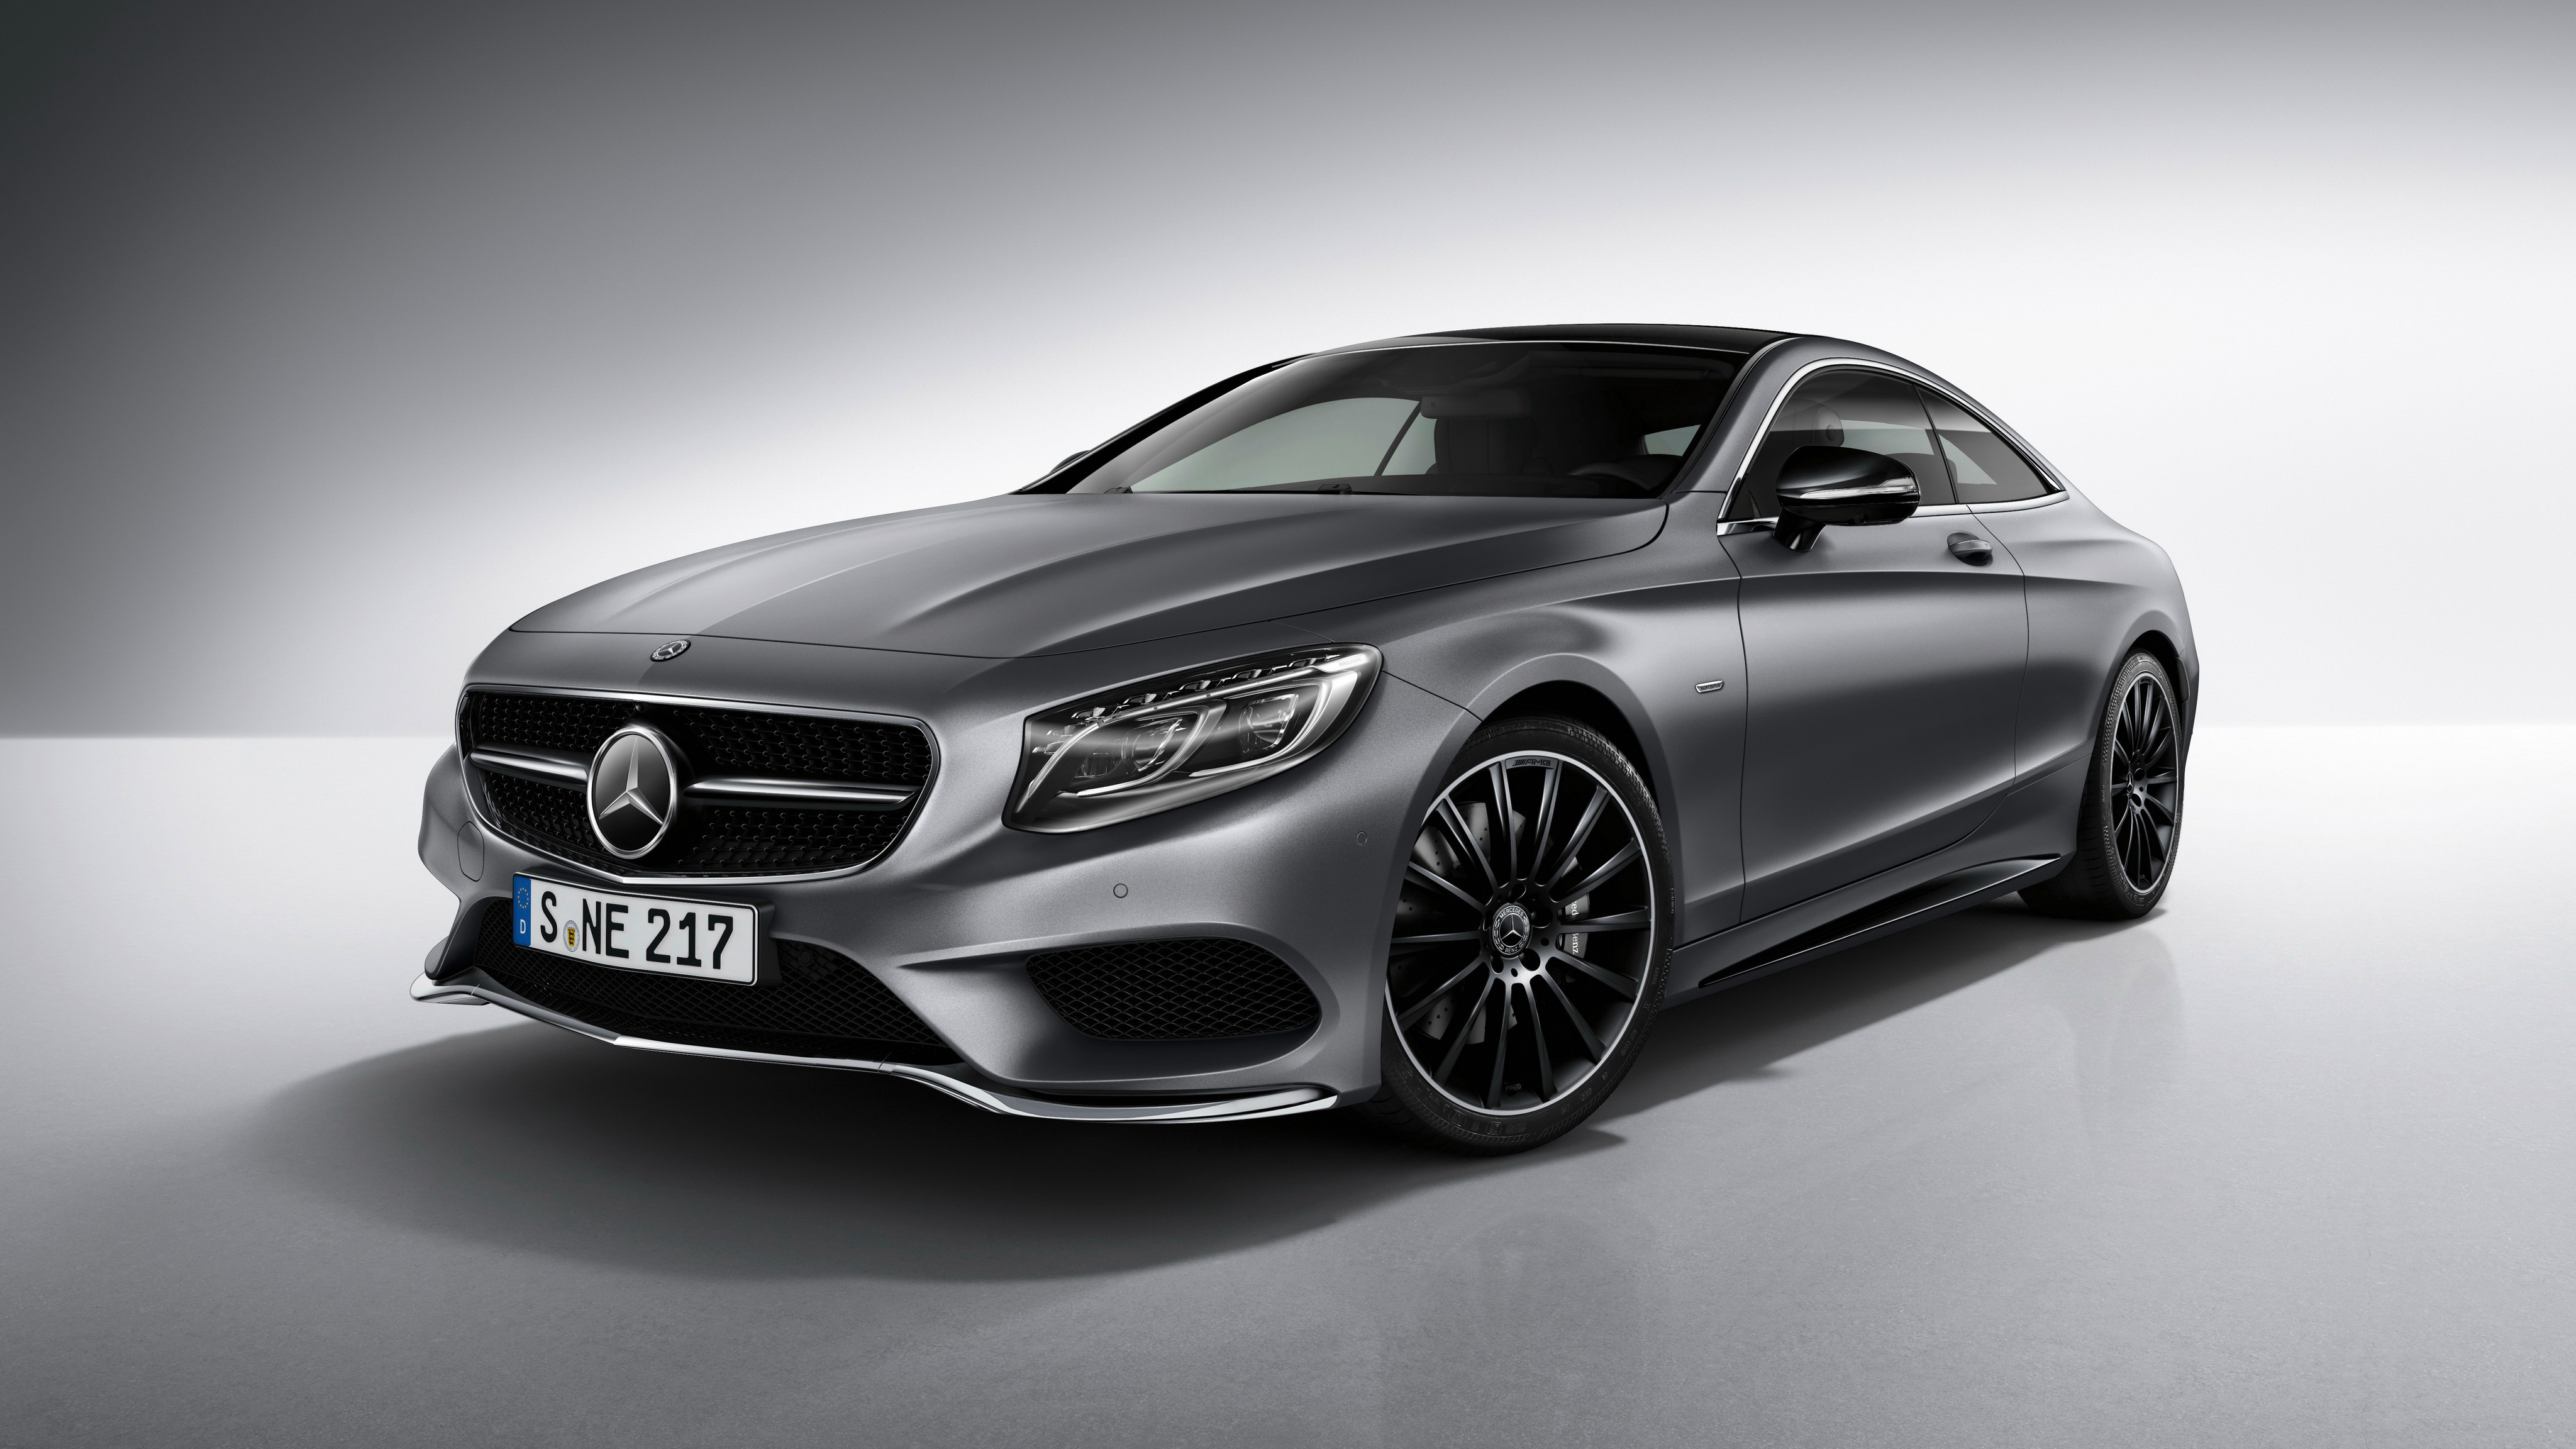 Mercedes Benz S Class Coupe Night Edition 4K 2017 ...